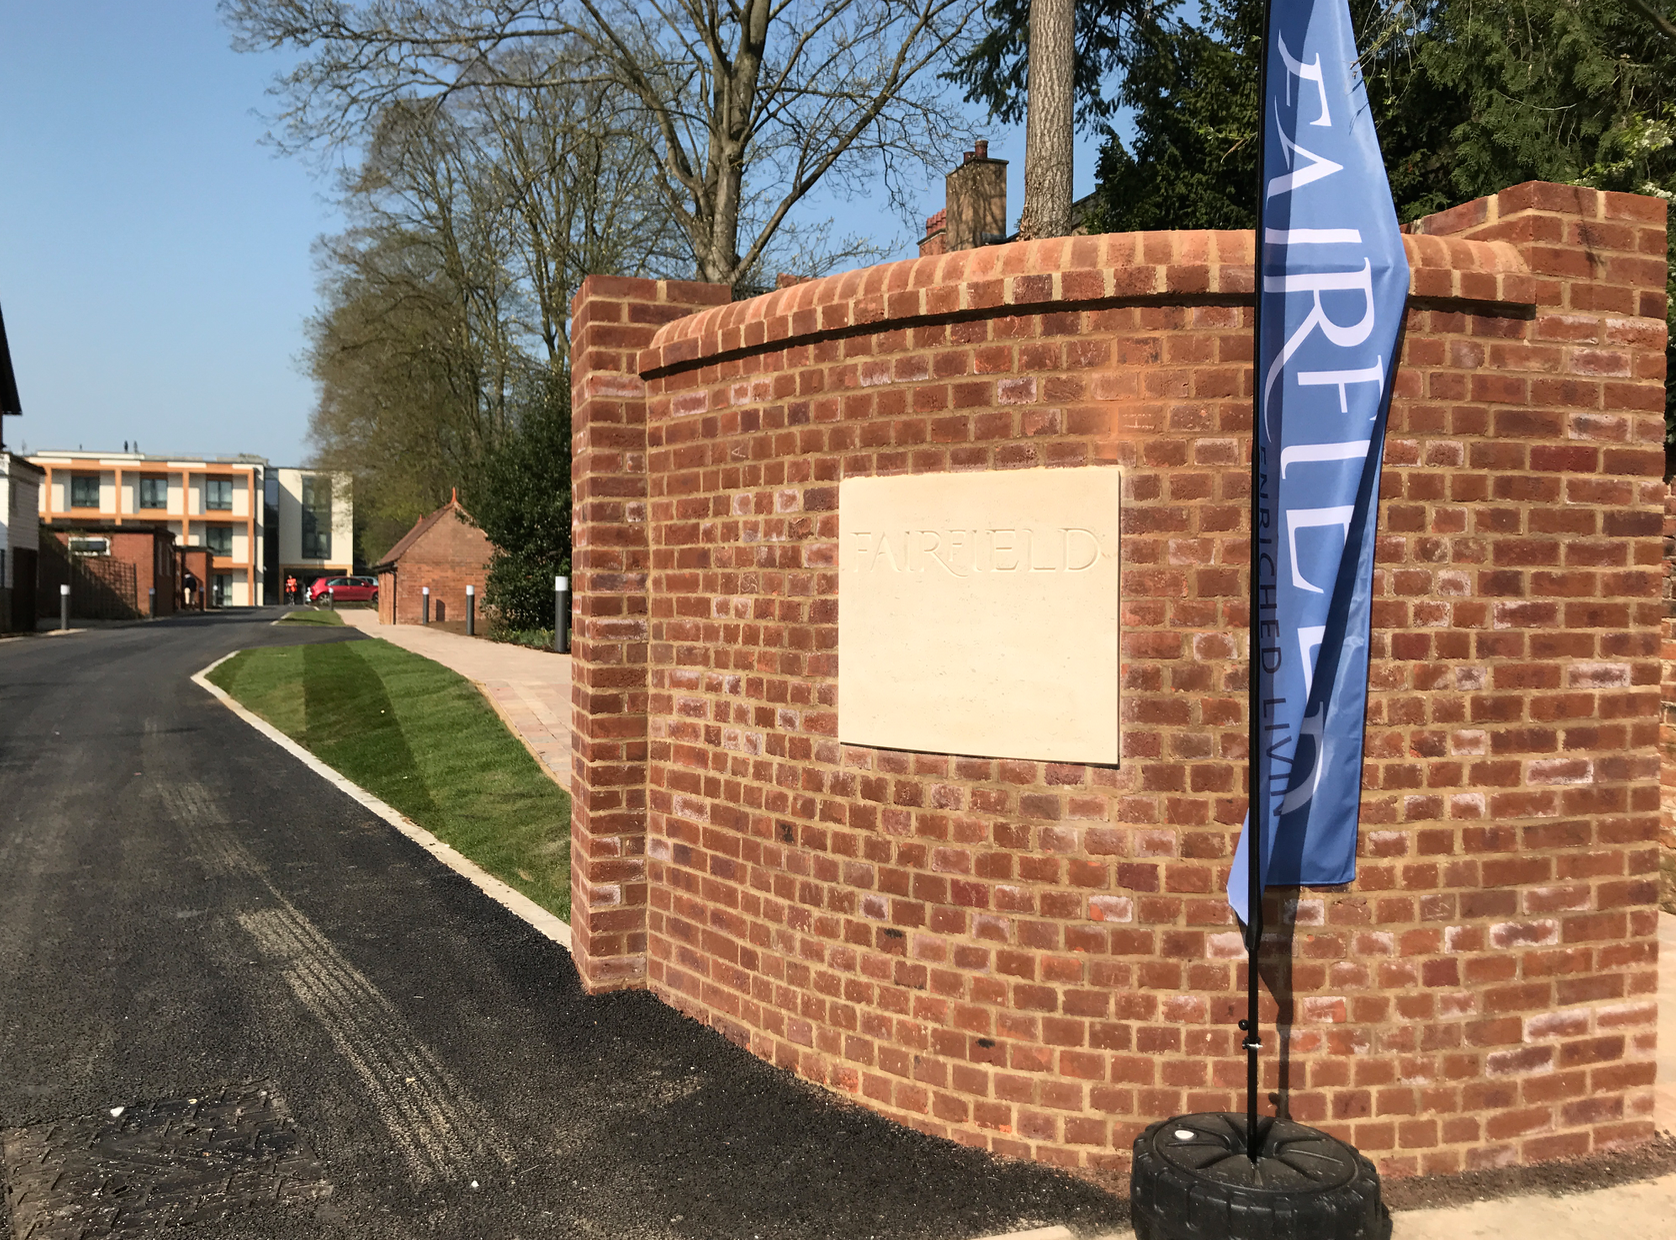 New sign welcomes visitors to open day at Fairfield